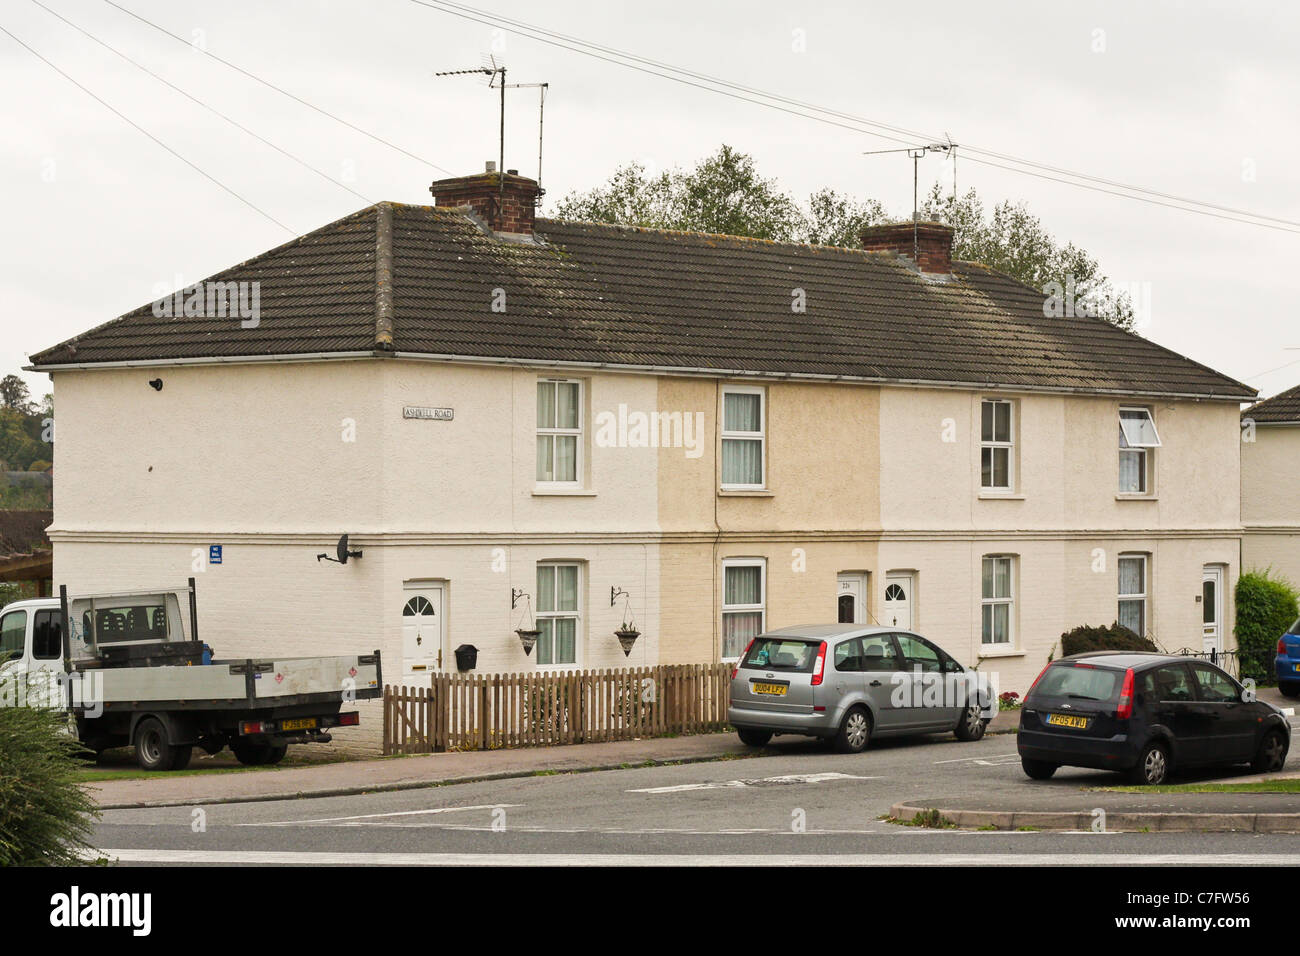 Local authority housing on Ashwell Road, Bury St Edmunds.  The area is locally known as the Priors Estate - Stock Image